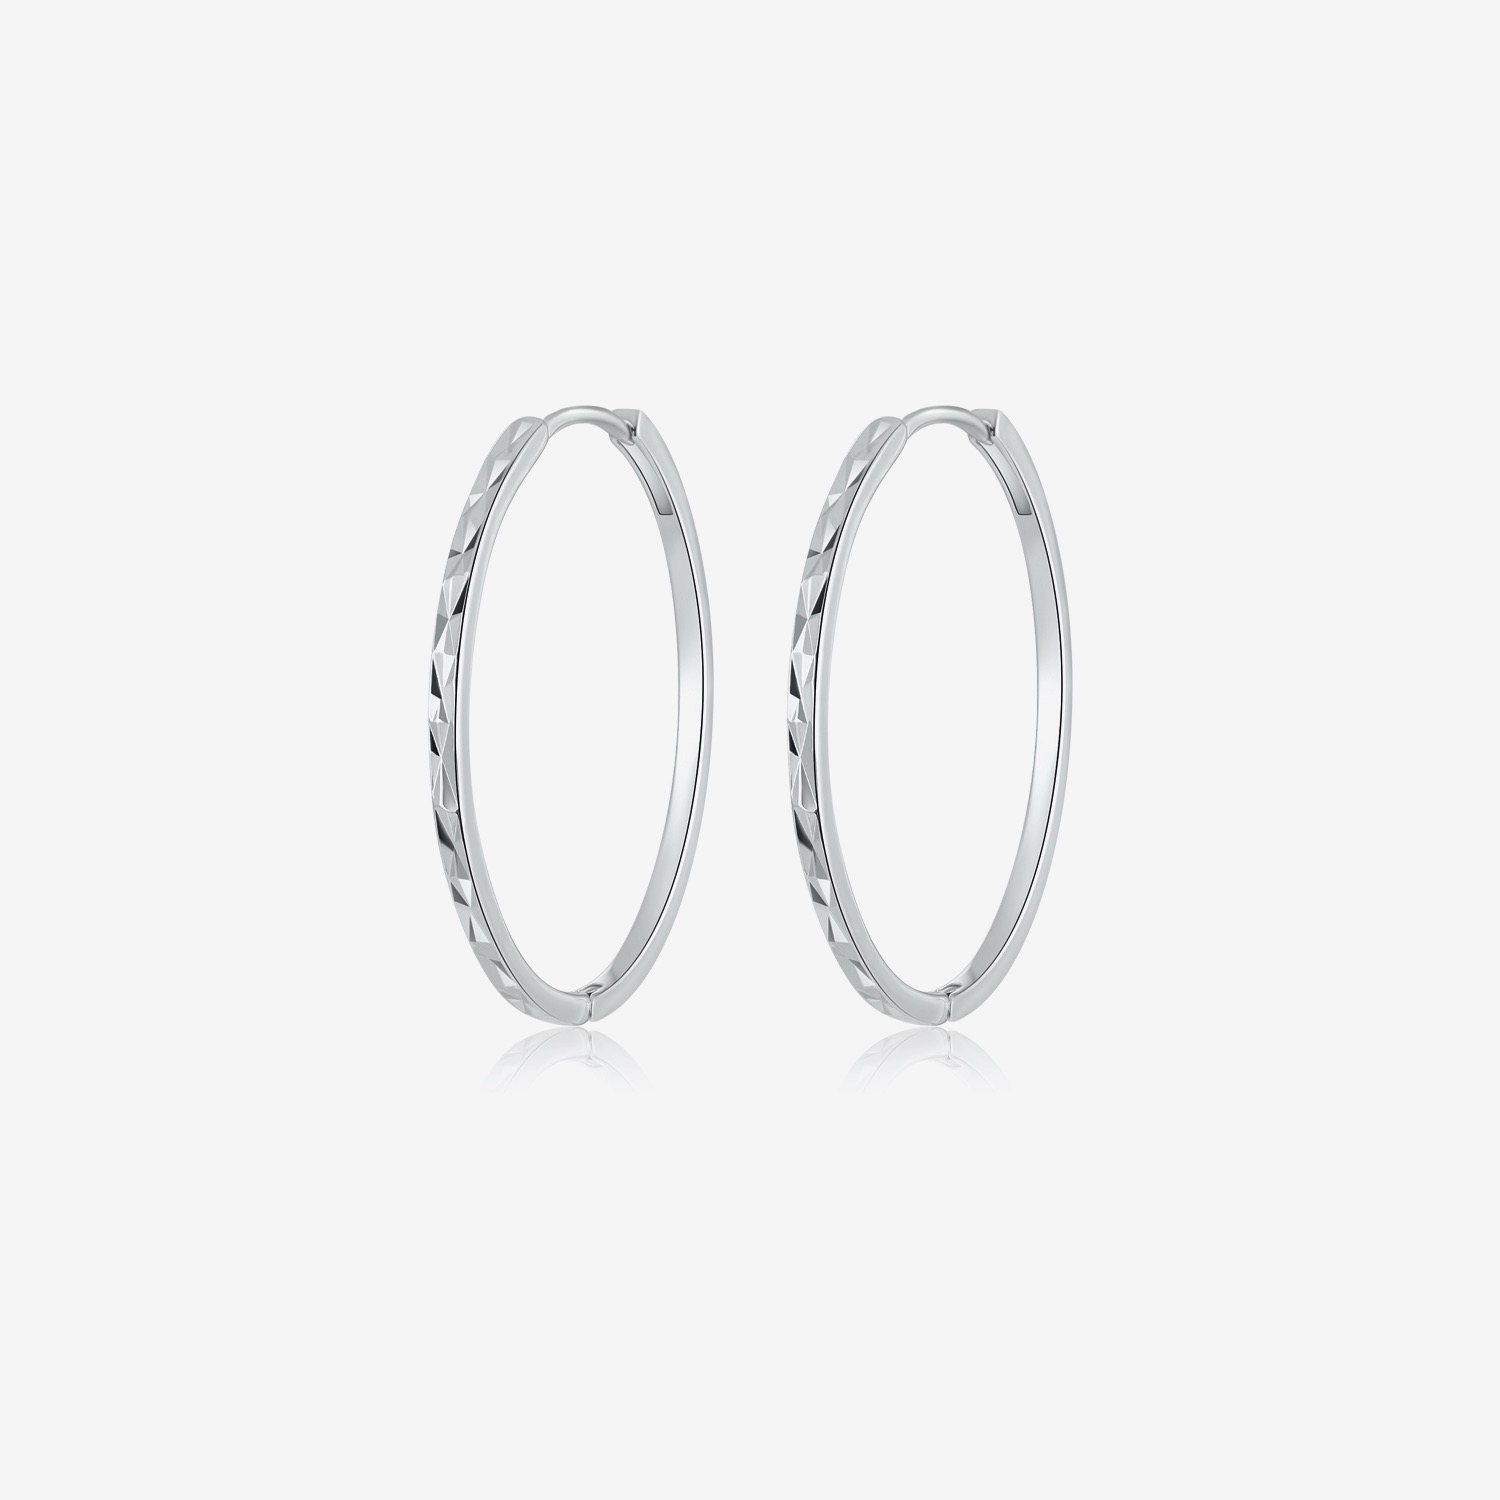 Alyssa Earrings - Gold by Emili on curated-crowd.com